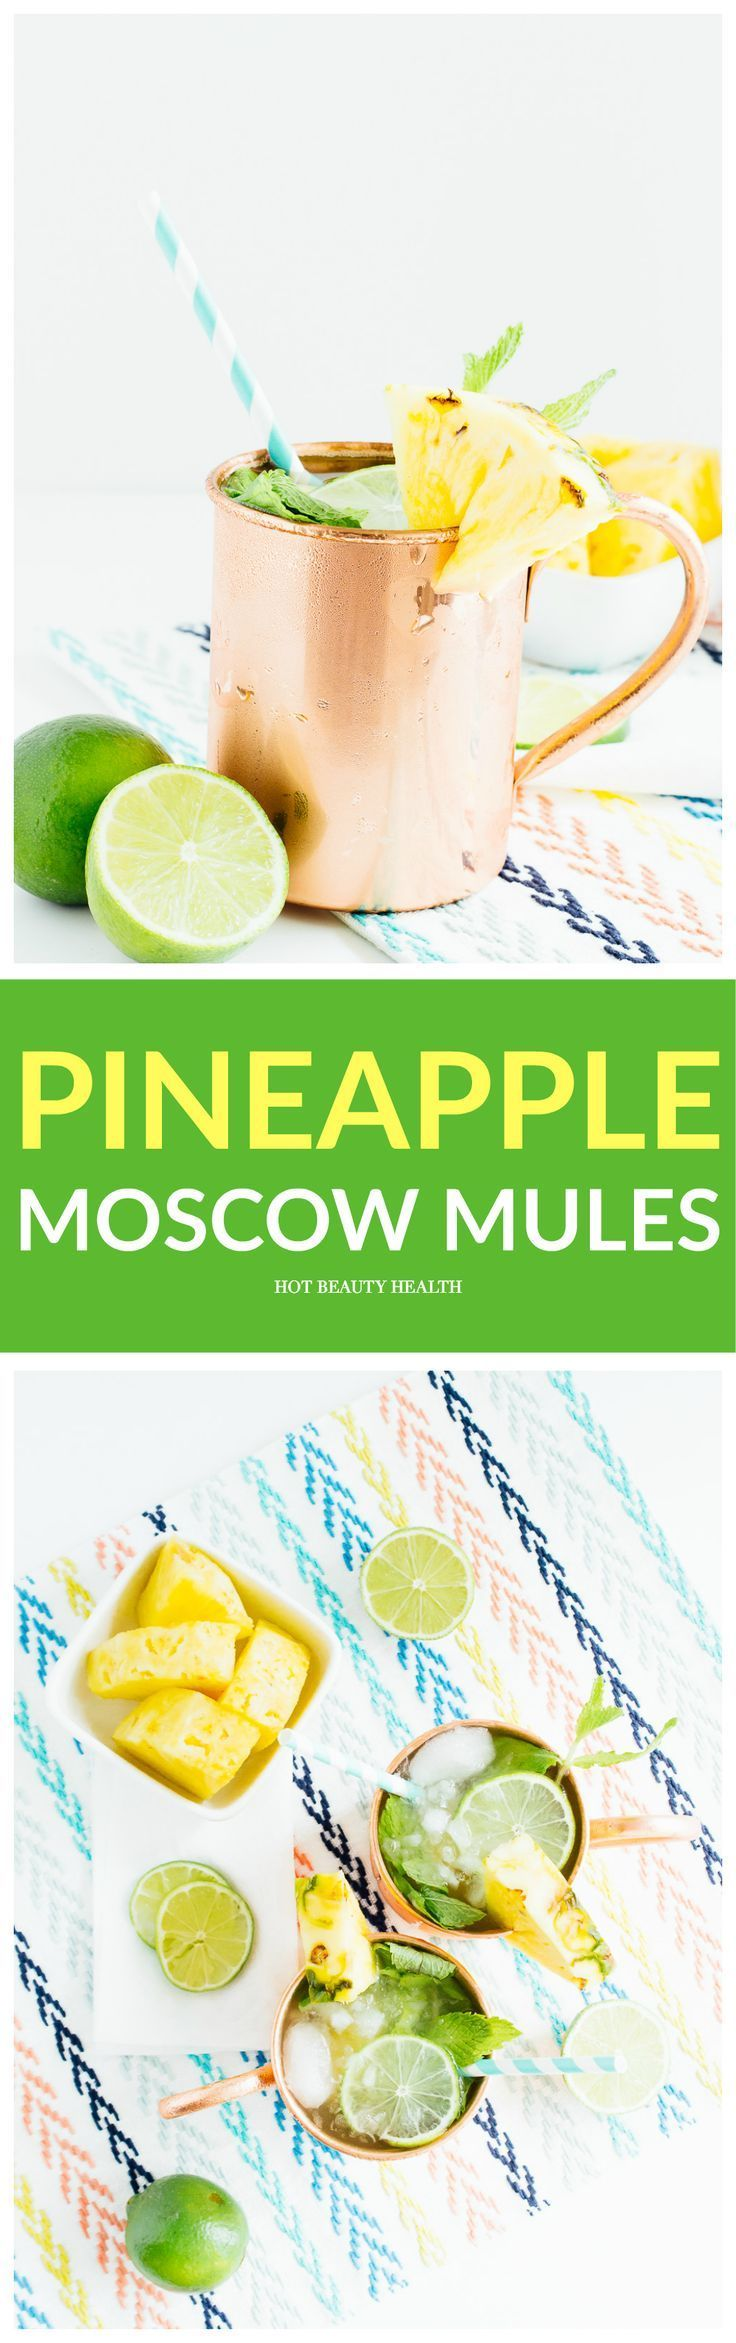 This pineapple moscow mule cocktail recipe is the perfect spring or summer drink that's full of tropical goodness. Contains alcohol and pineapple juice!